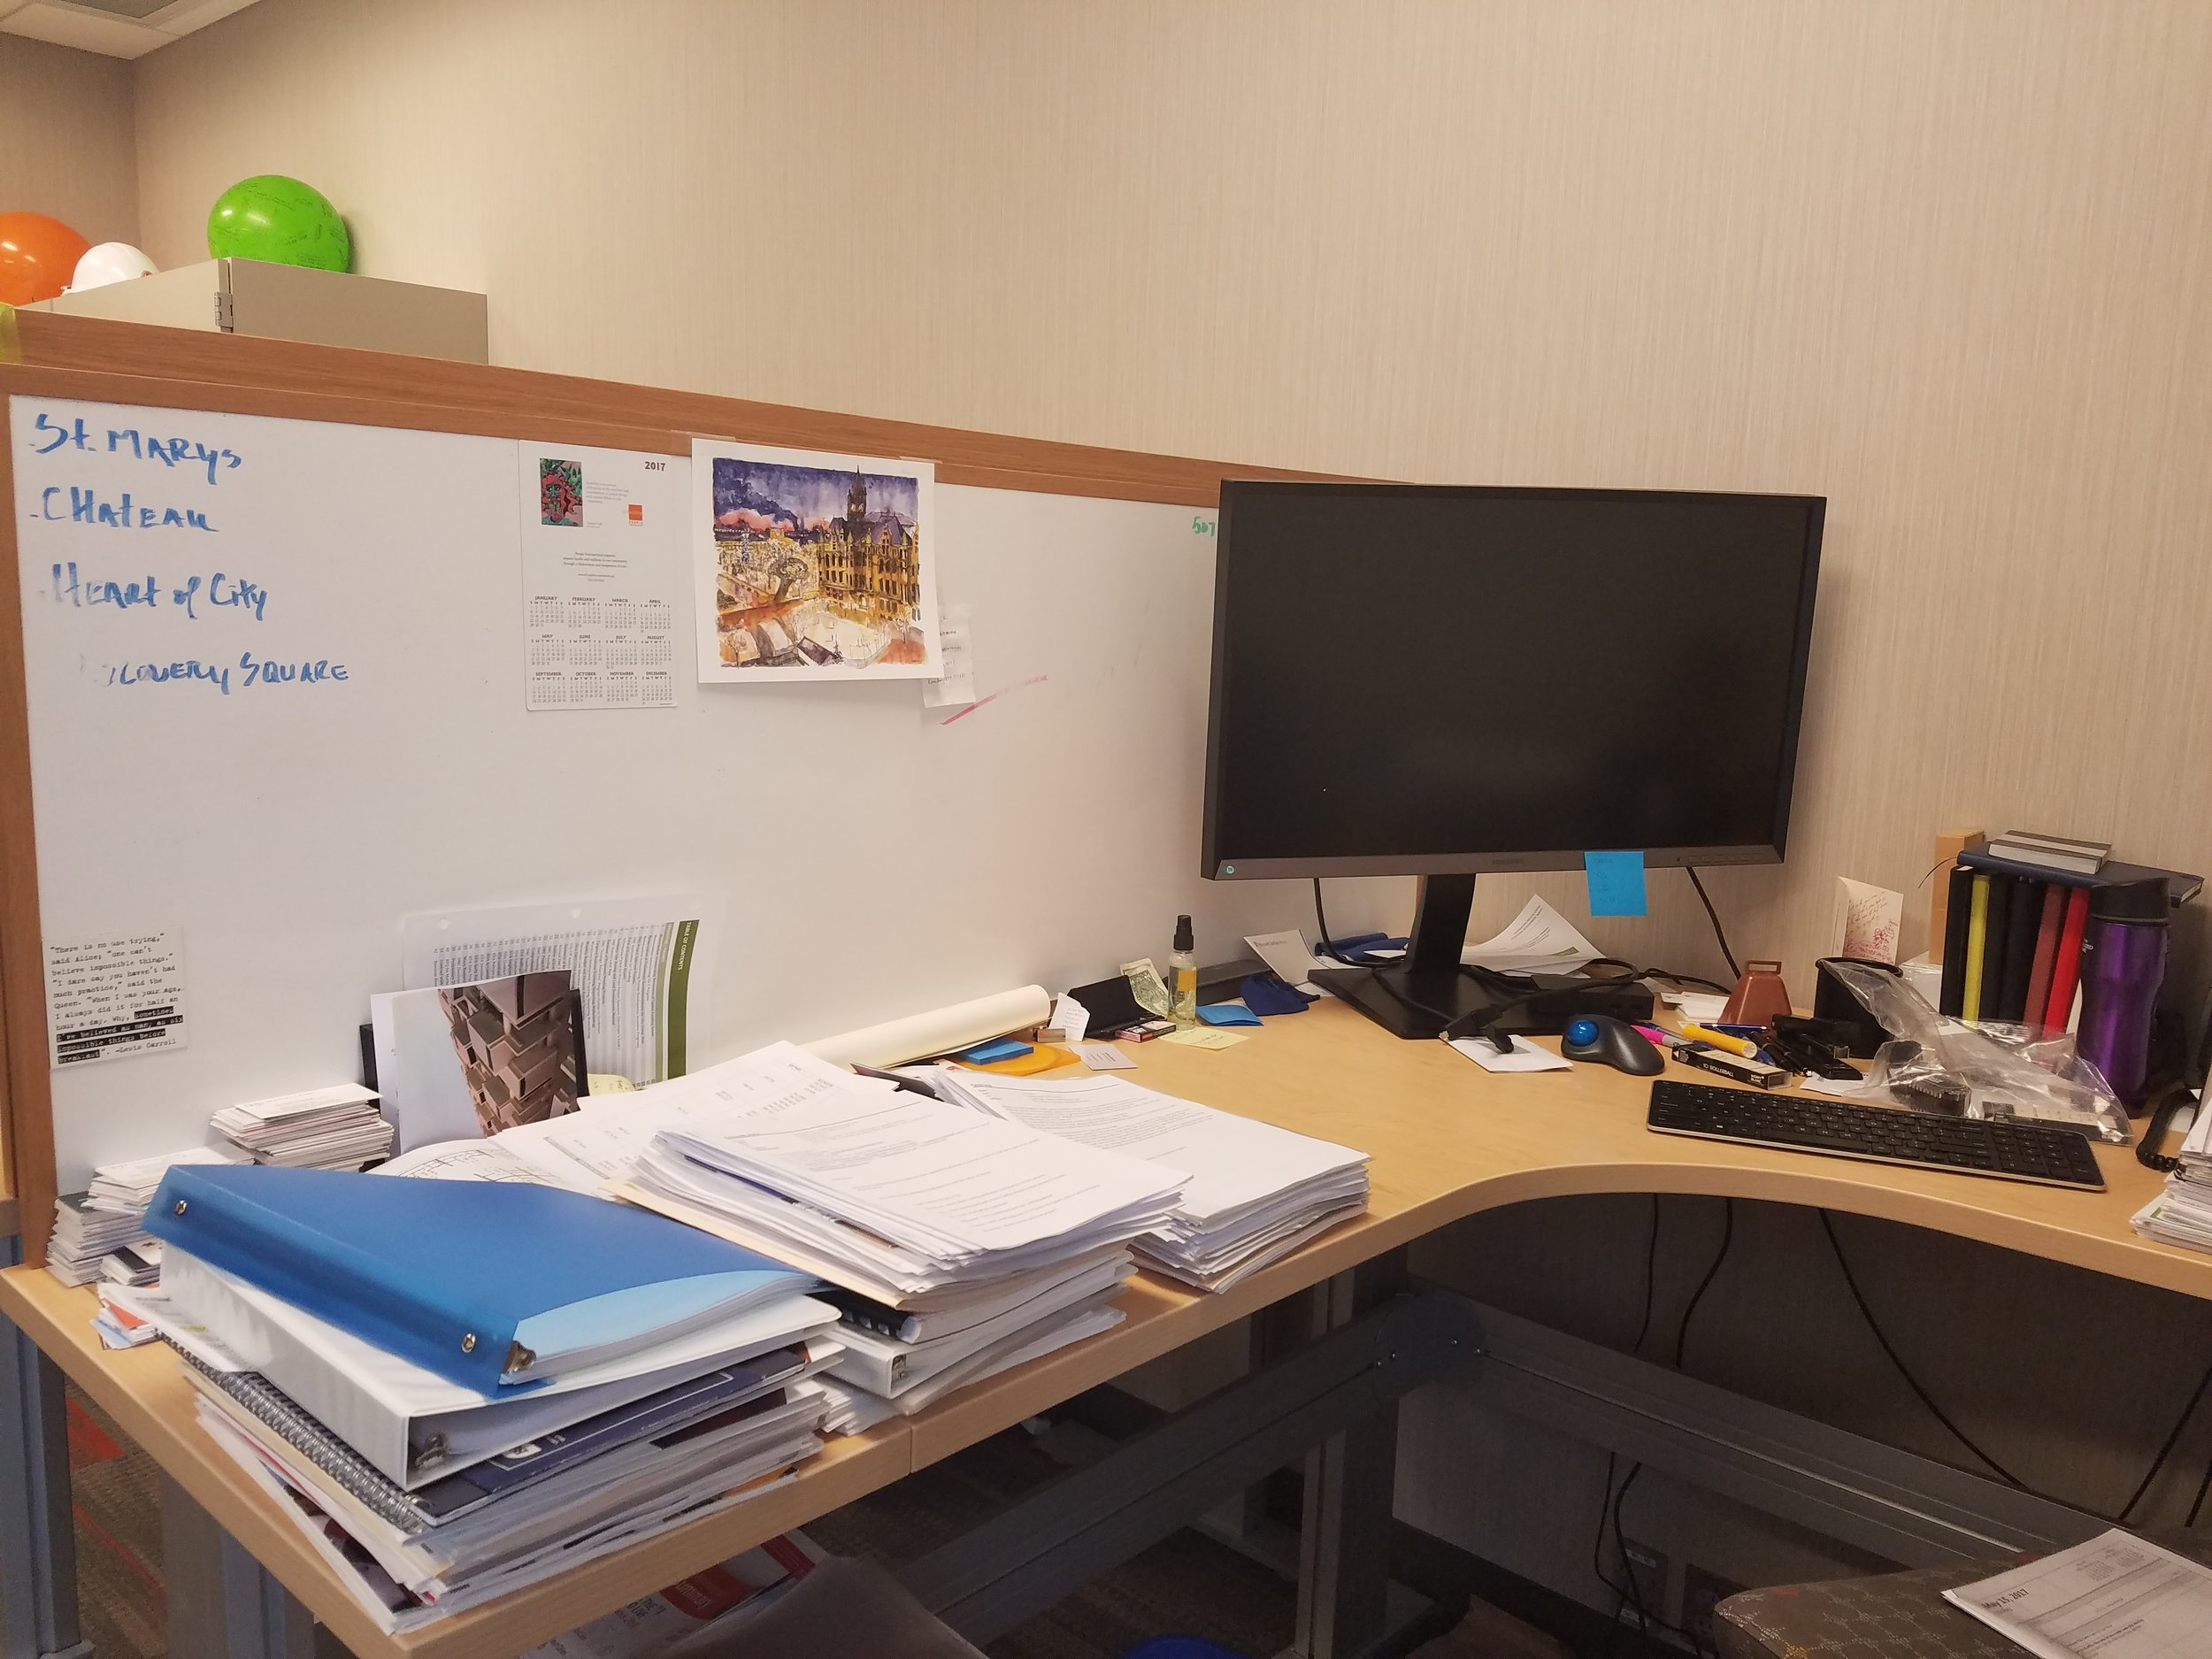 Desk of Patrick Seeb, DMC Director of Economic Development and Placemaking.